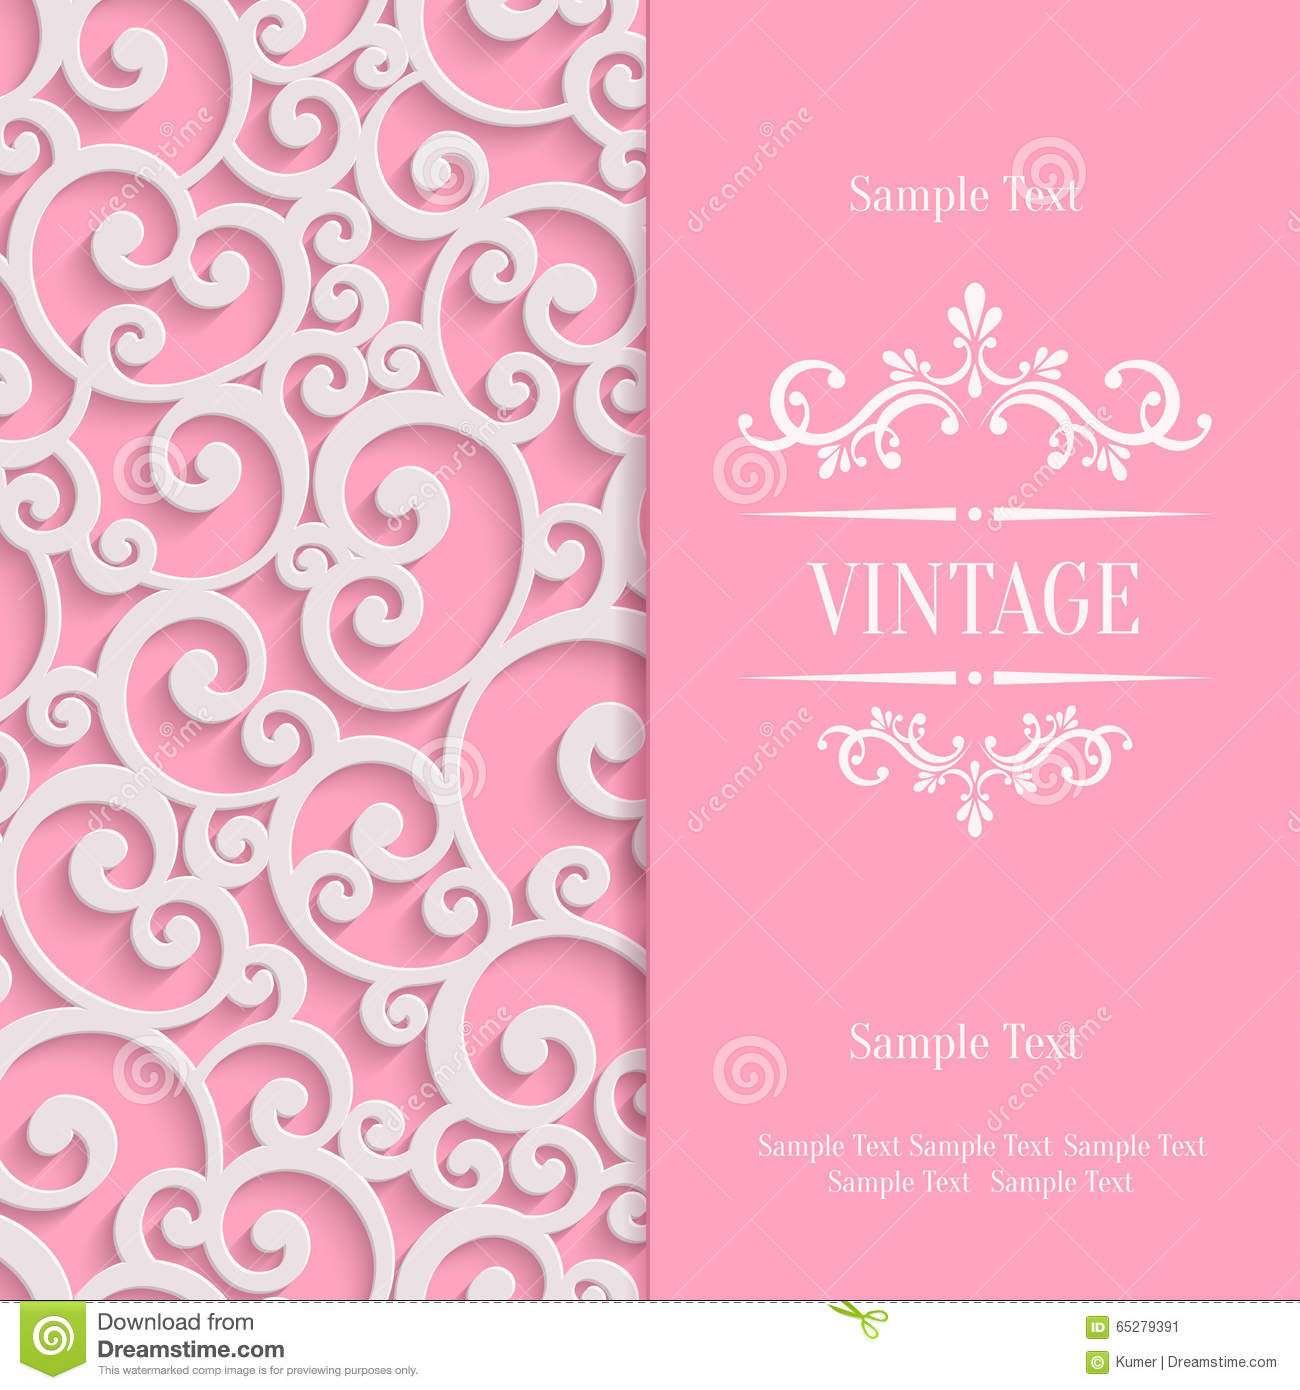 Vector pink 3d vintage invitation card with floral stock vector royalty free vector download vector pink 3d vintage invitation stopboris Image collections